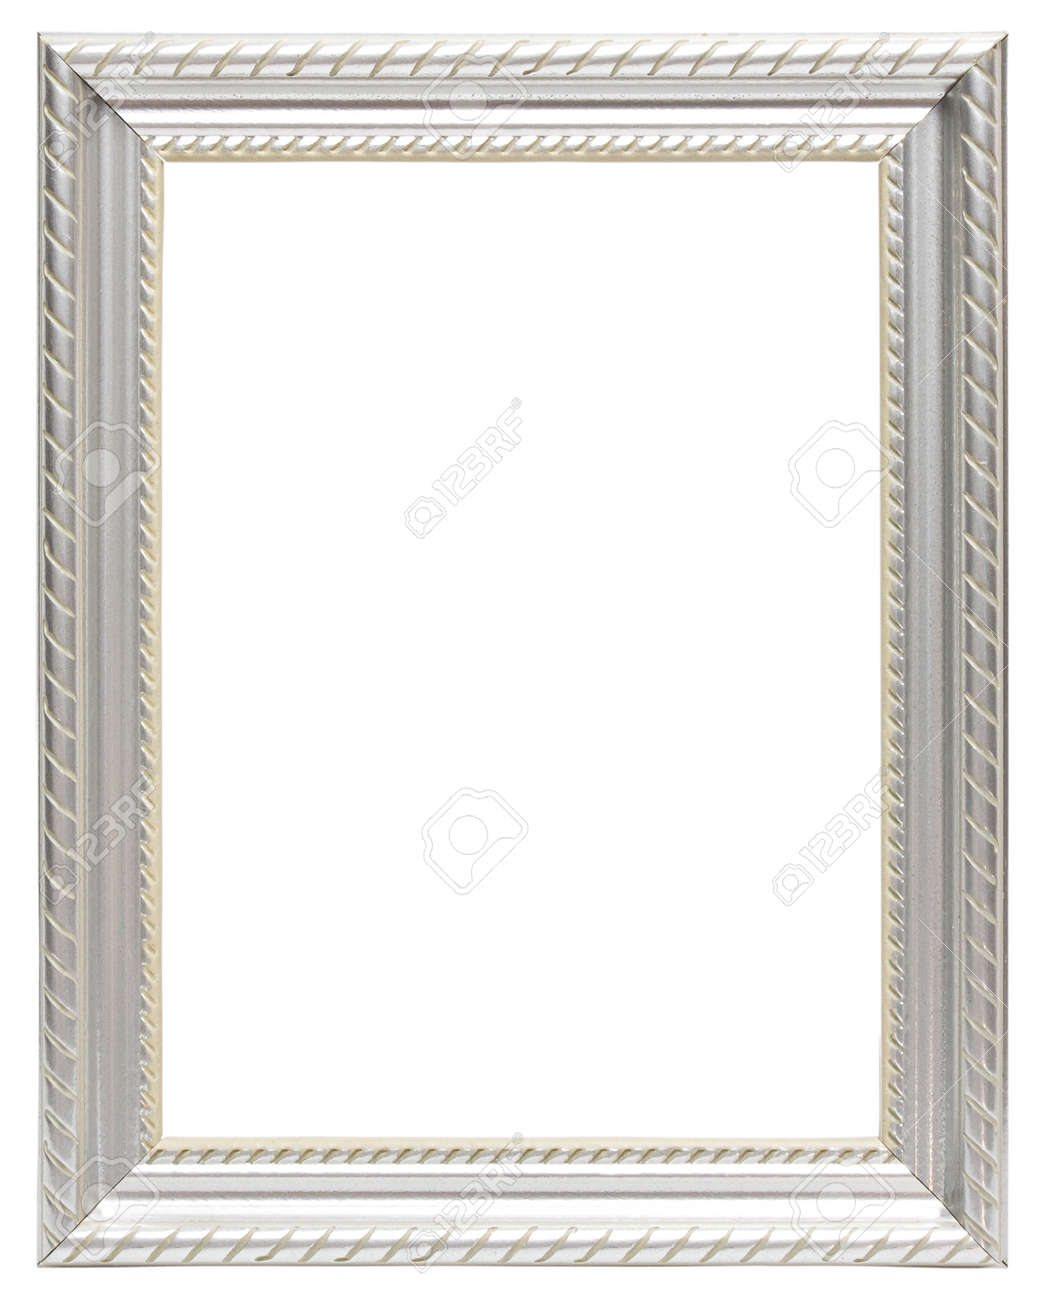 Silver Frame Isolated On White Background Stock Photo, Picture And ...